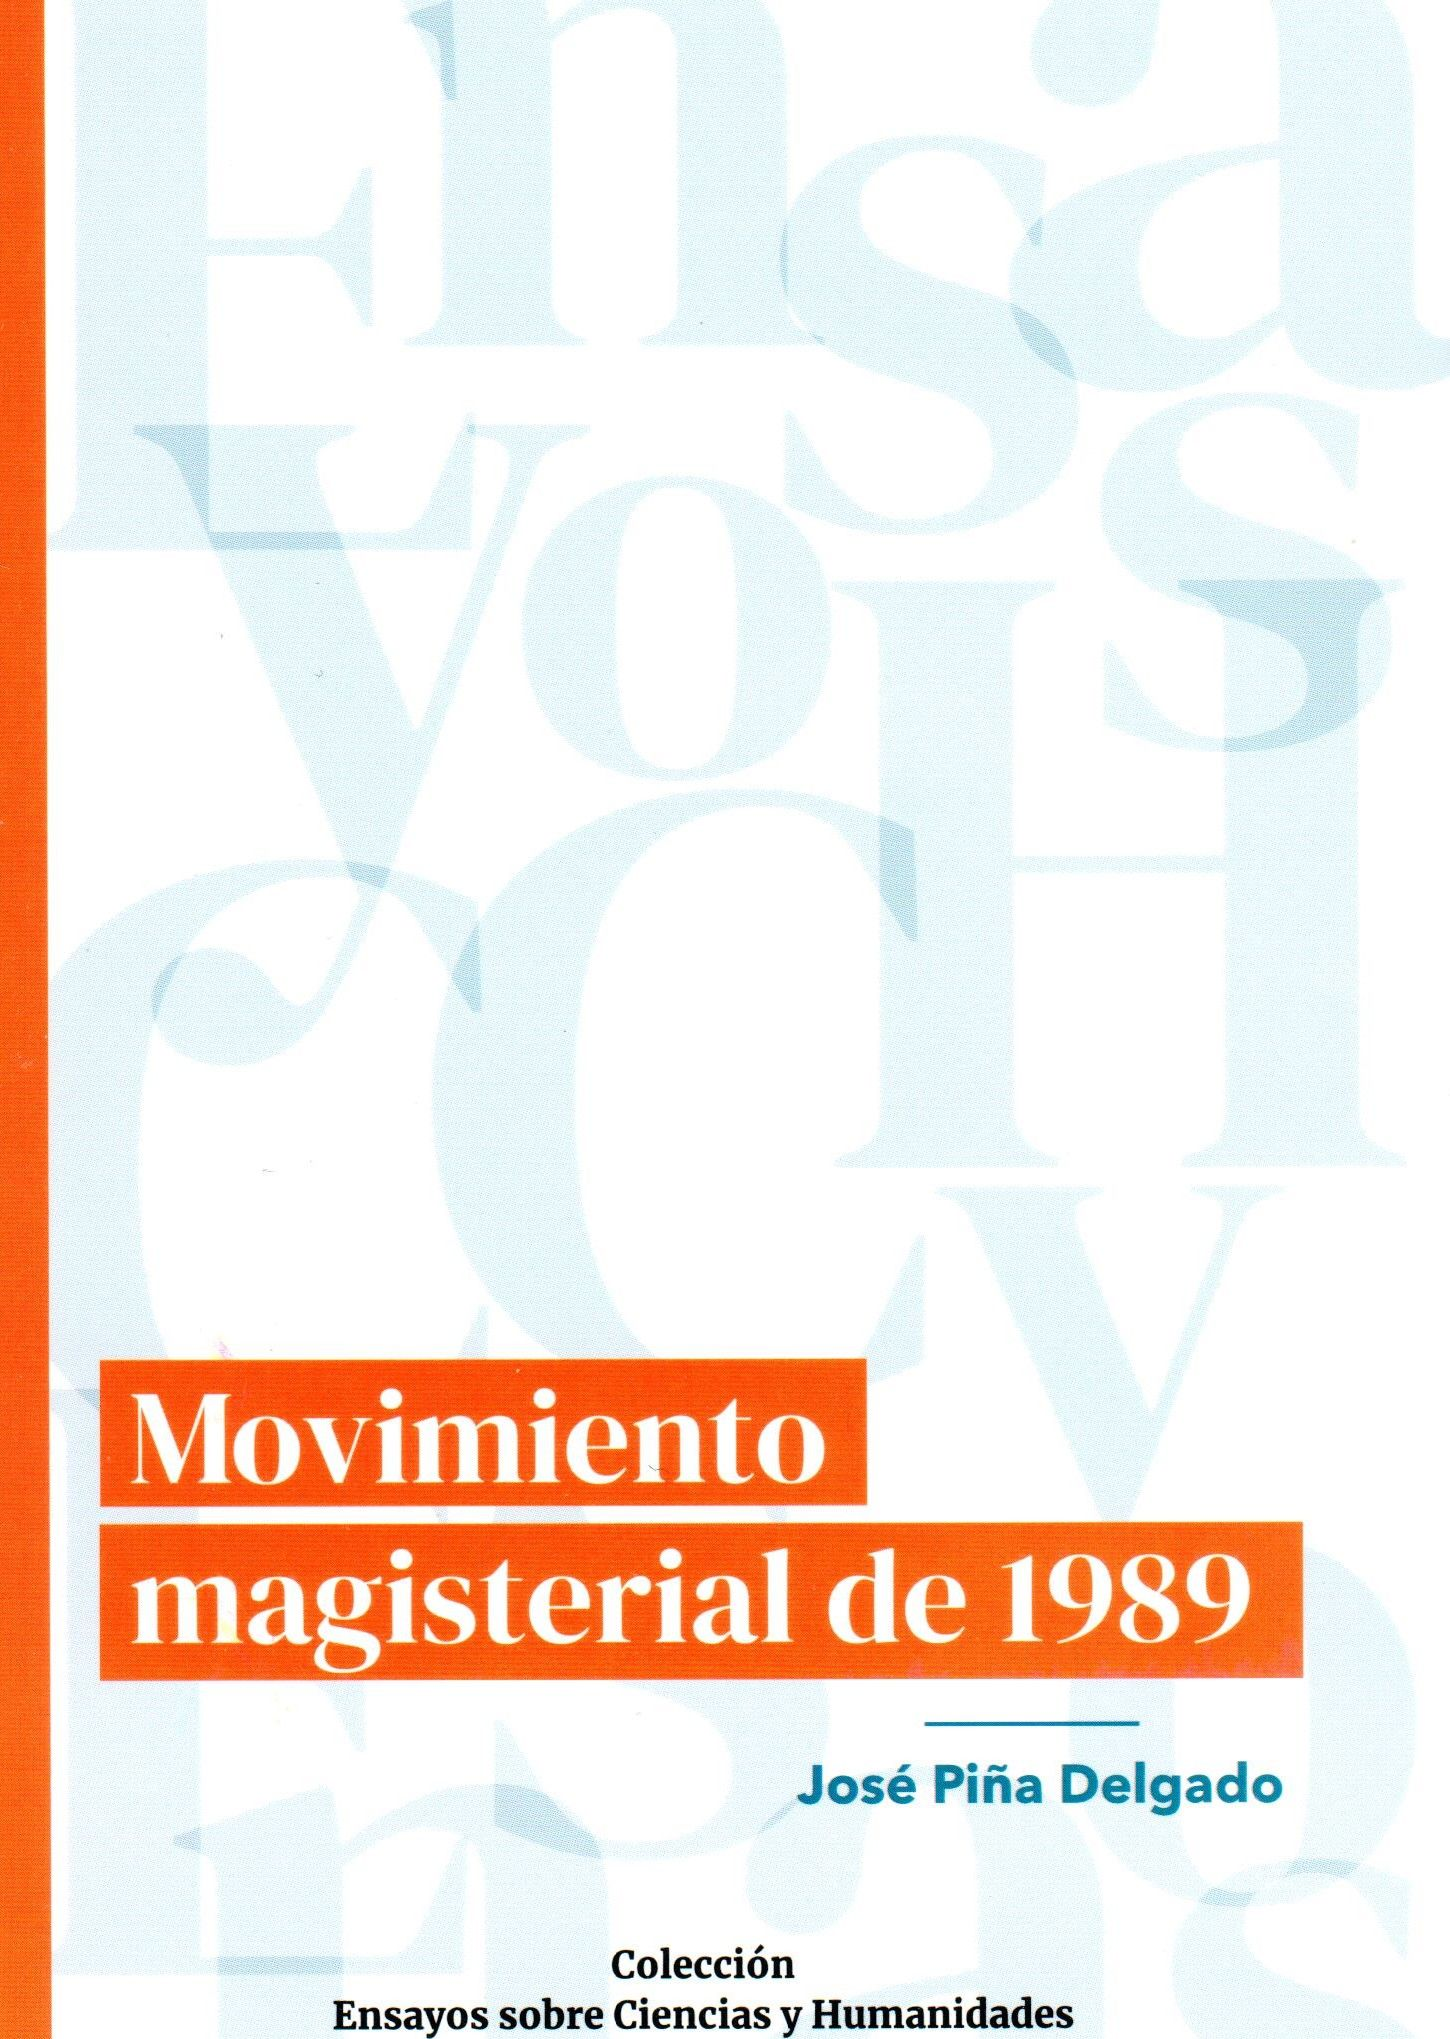 Movimiento magisterial de 1989